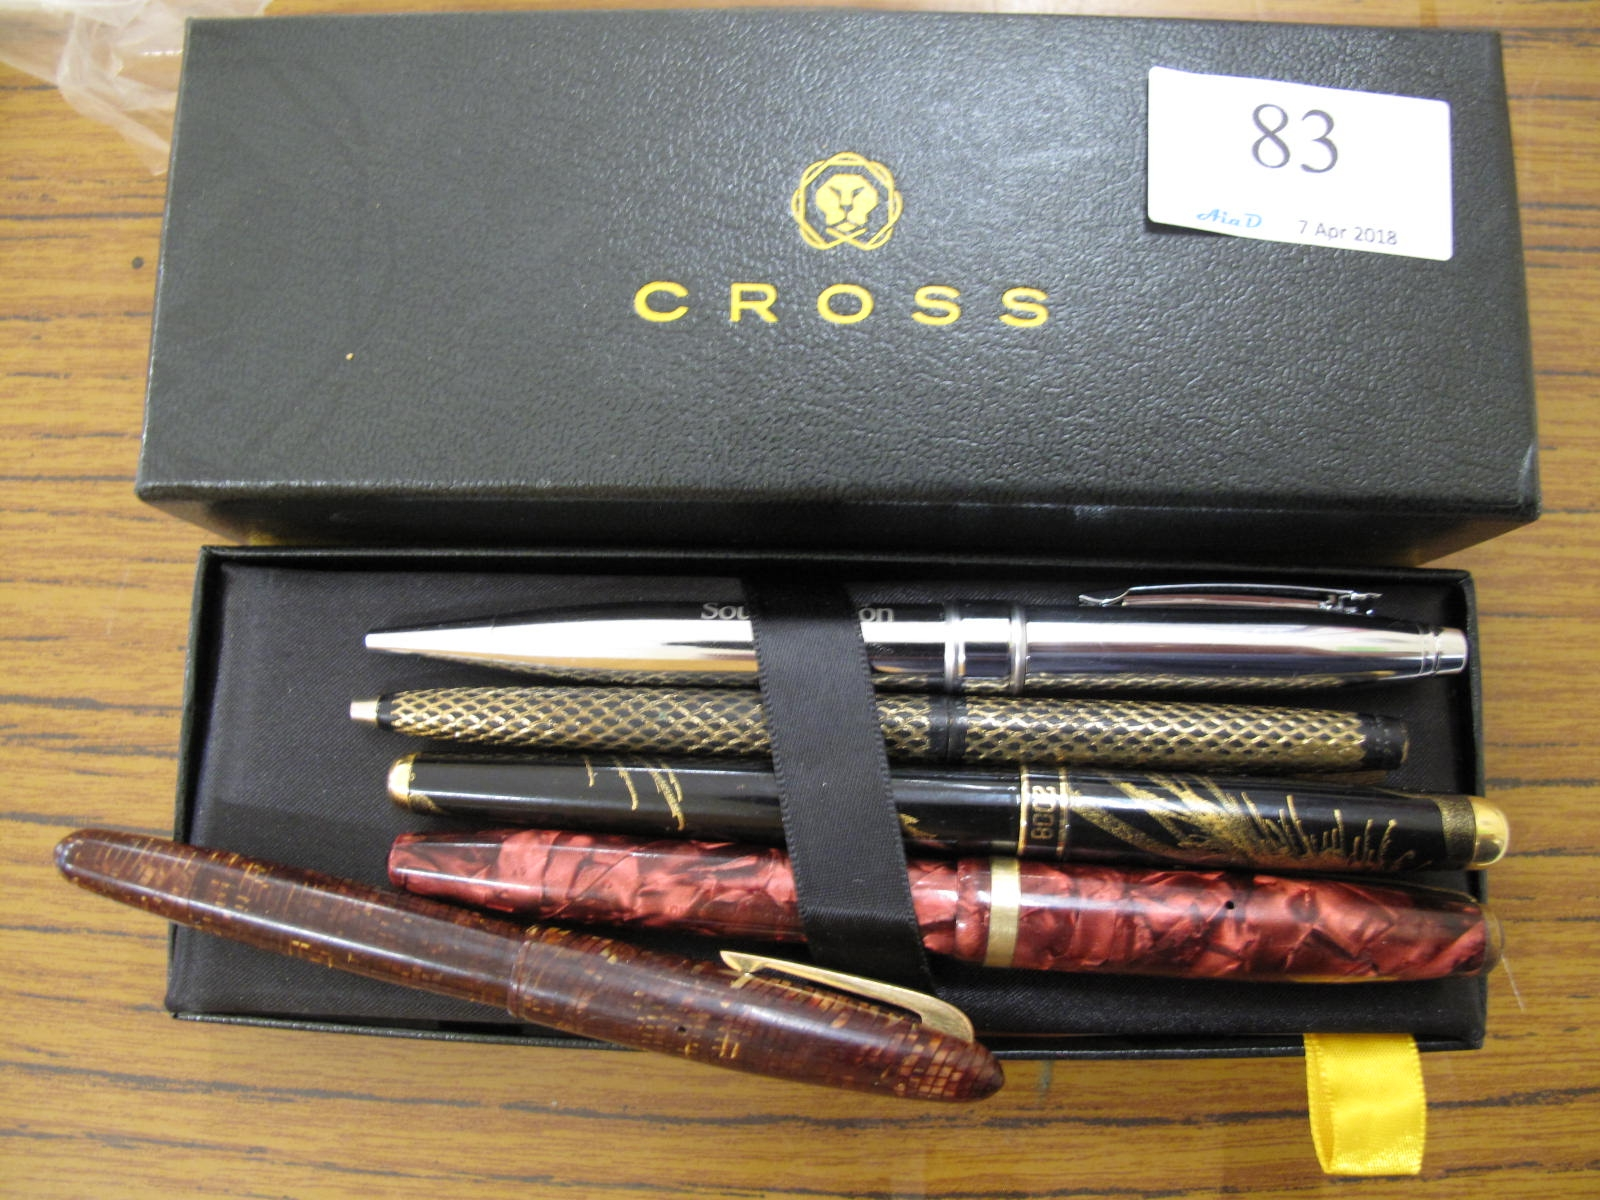 Lot 83 - Collection of 5 fountain pens and Cross box - Sold for £55